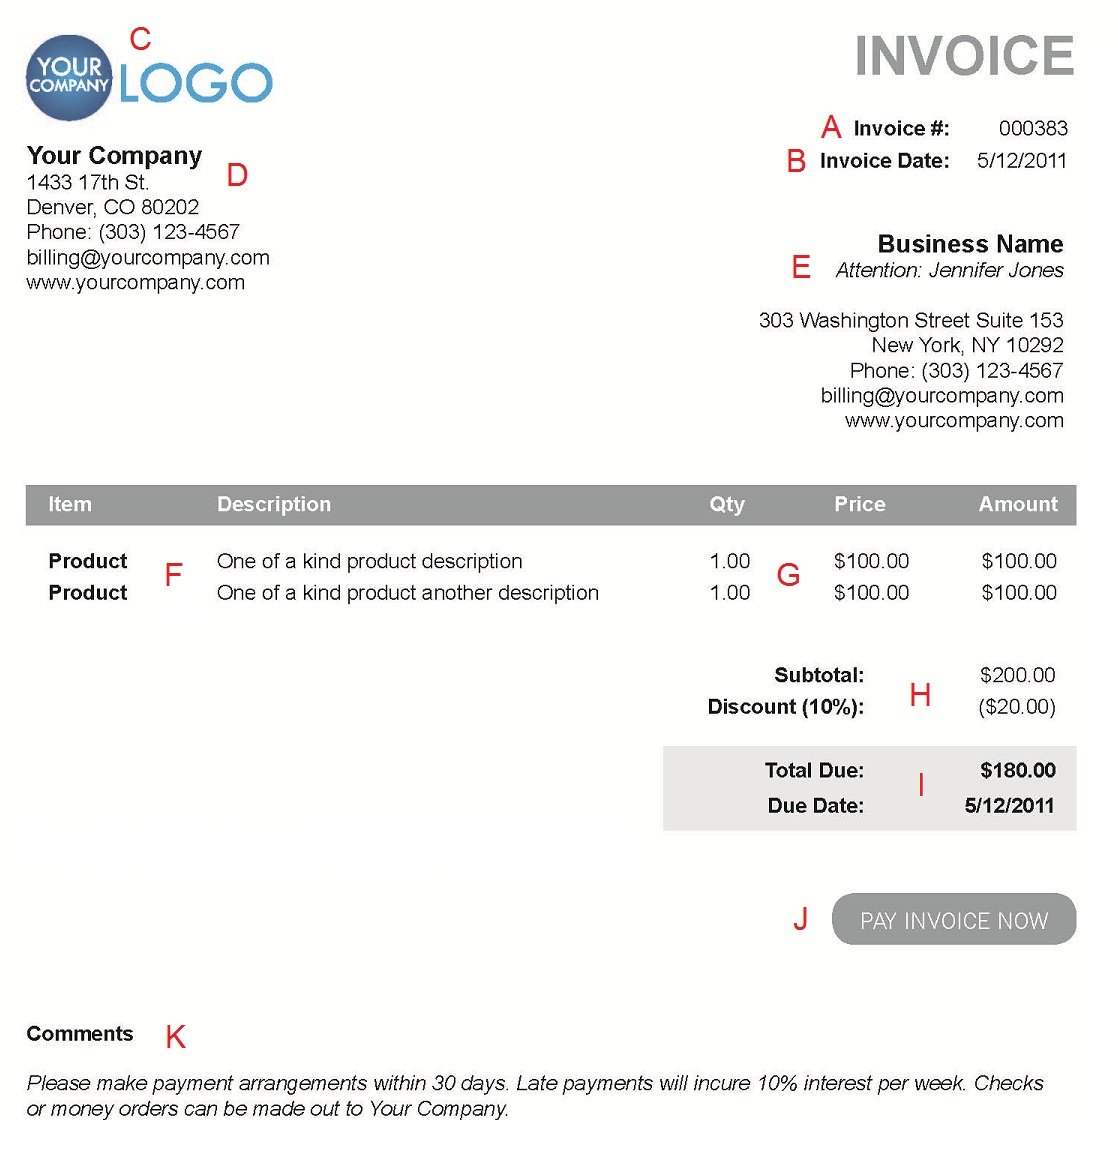 Opposenewapstandardsus  Pleasant The  Different Sections Of An Electronic Payment Invoice With Goodlooking A  With Beauteous Crock Pot Receipts Also Best Buy Return Policy Without A Receipt In Addition Make A Receipt Online Free And Fake Receipts Templates As Well As Return Receipt Outlook Additionally Toys R Us Receipt Lookup From Paysimplecom With Opposenewapstandardsus  Goodlooking The  Different Sections Of An Electronic Payment Invoice With Beauteous A  And Pleasant Crock Pot Receipts Also Best Buy Return Policy Without A Receipt In Addition Make A Receipt Online Free From Paysimplecom